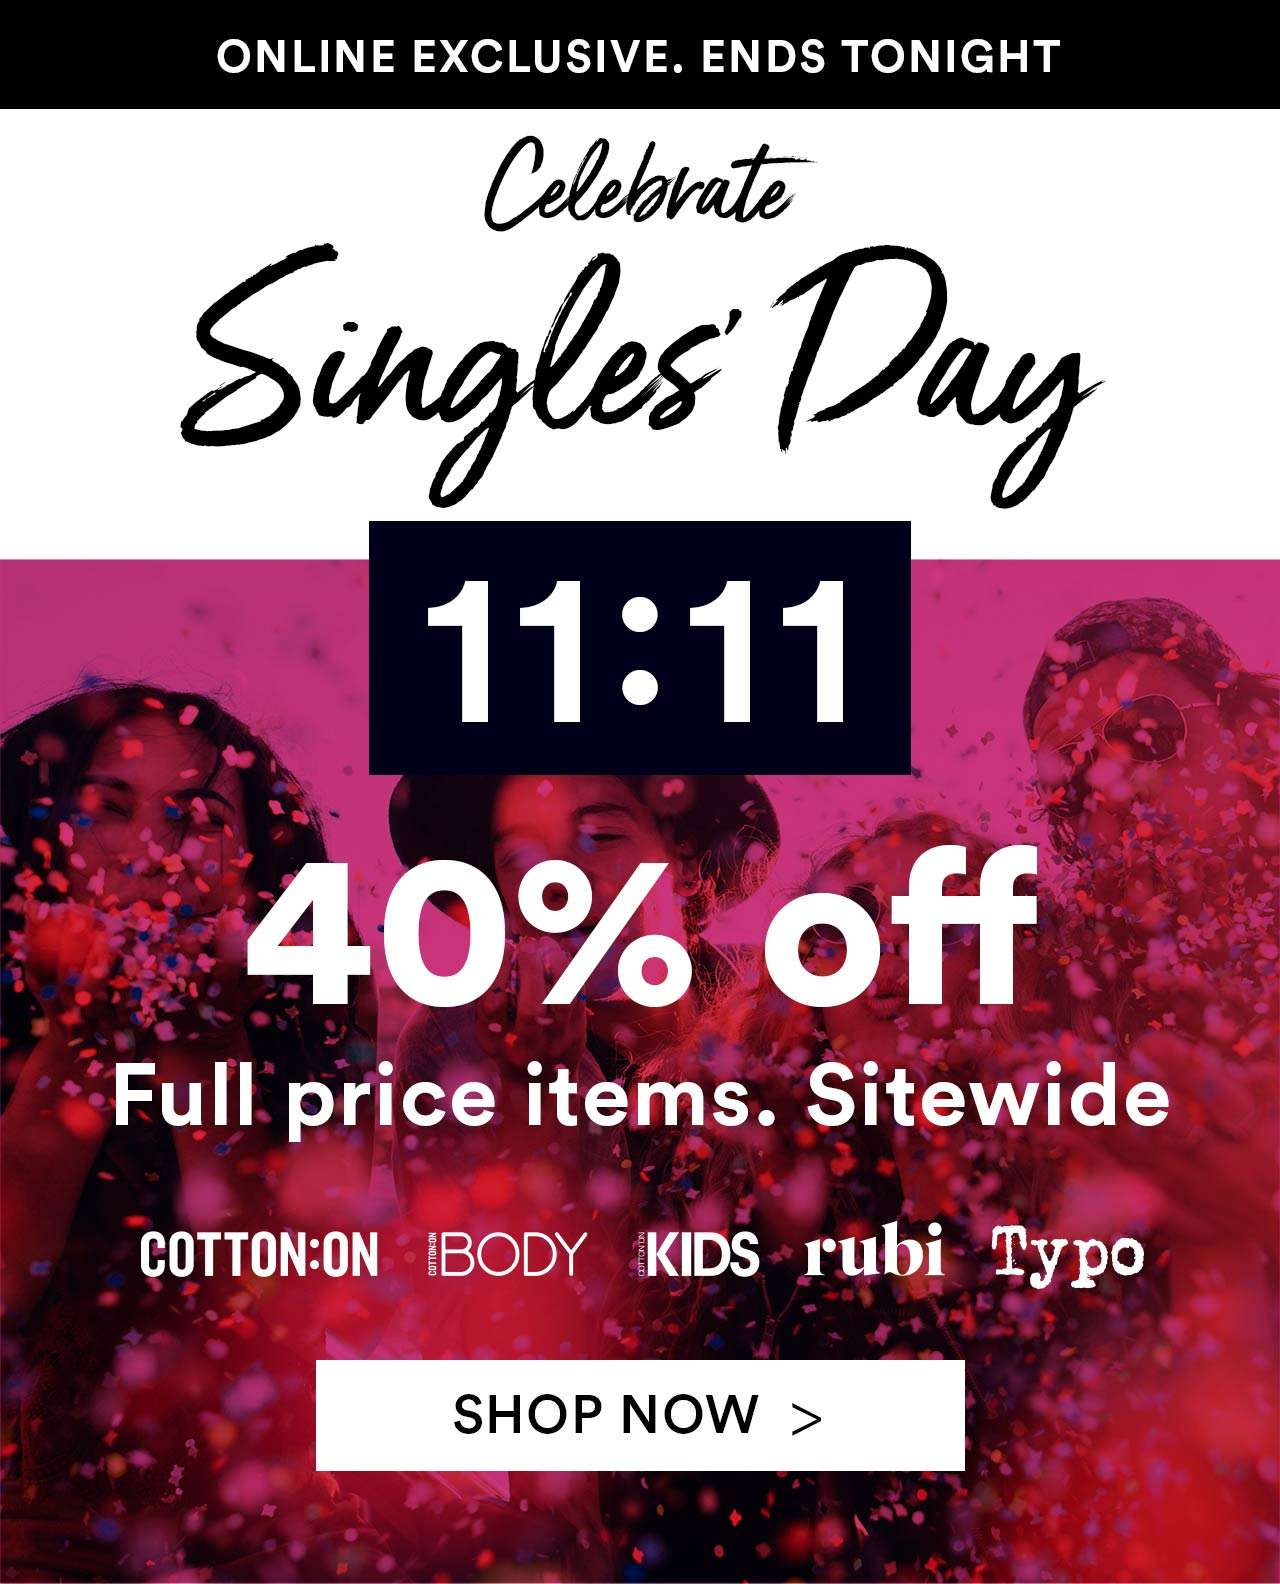 SINGLES DAY - ONLINE EXCLUSIVE. 2 DAYS ONLY. 40% OFF FULL PRICED ITEMS. SITEWIDE